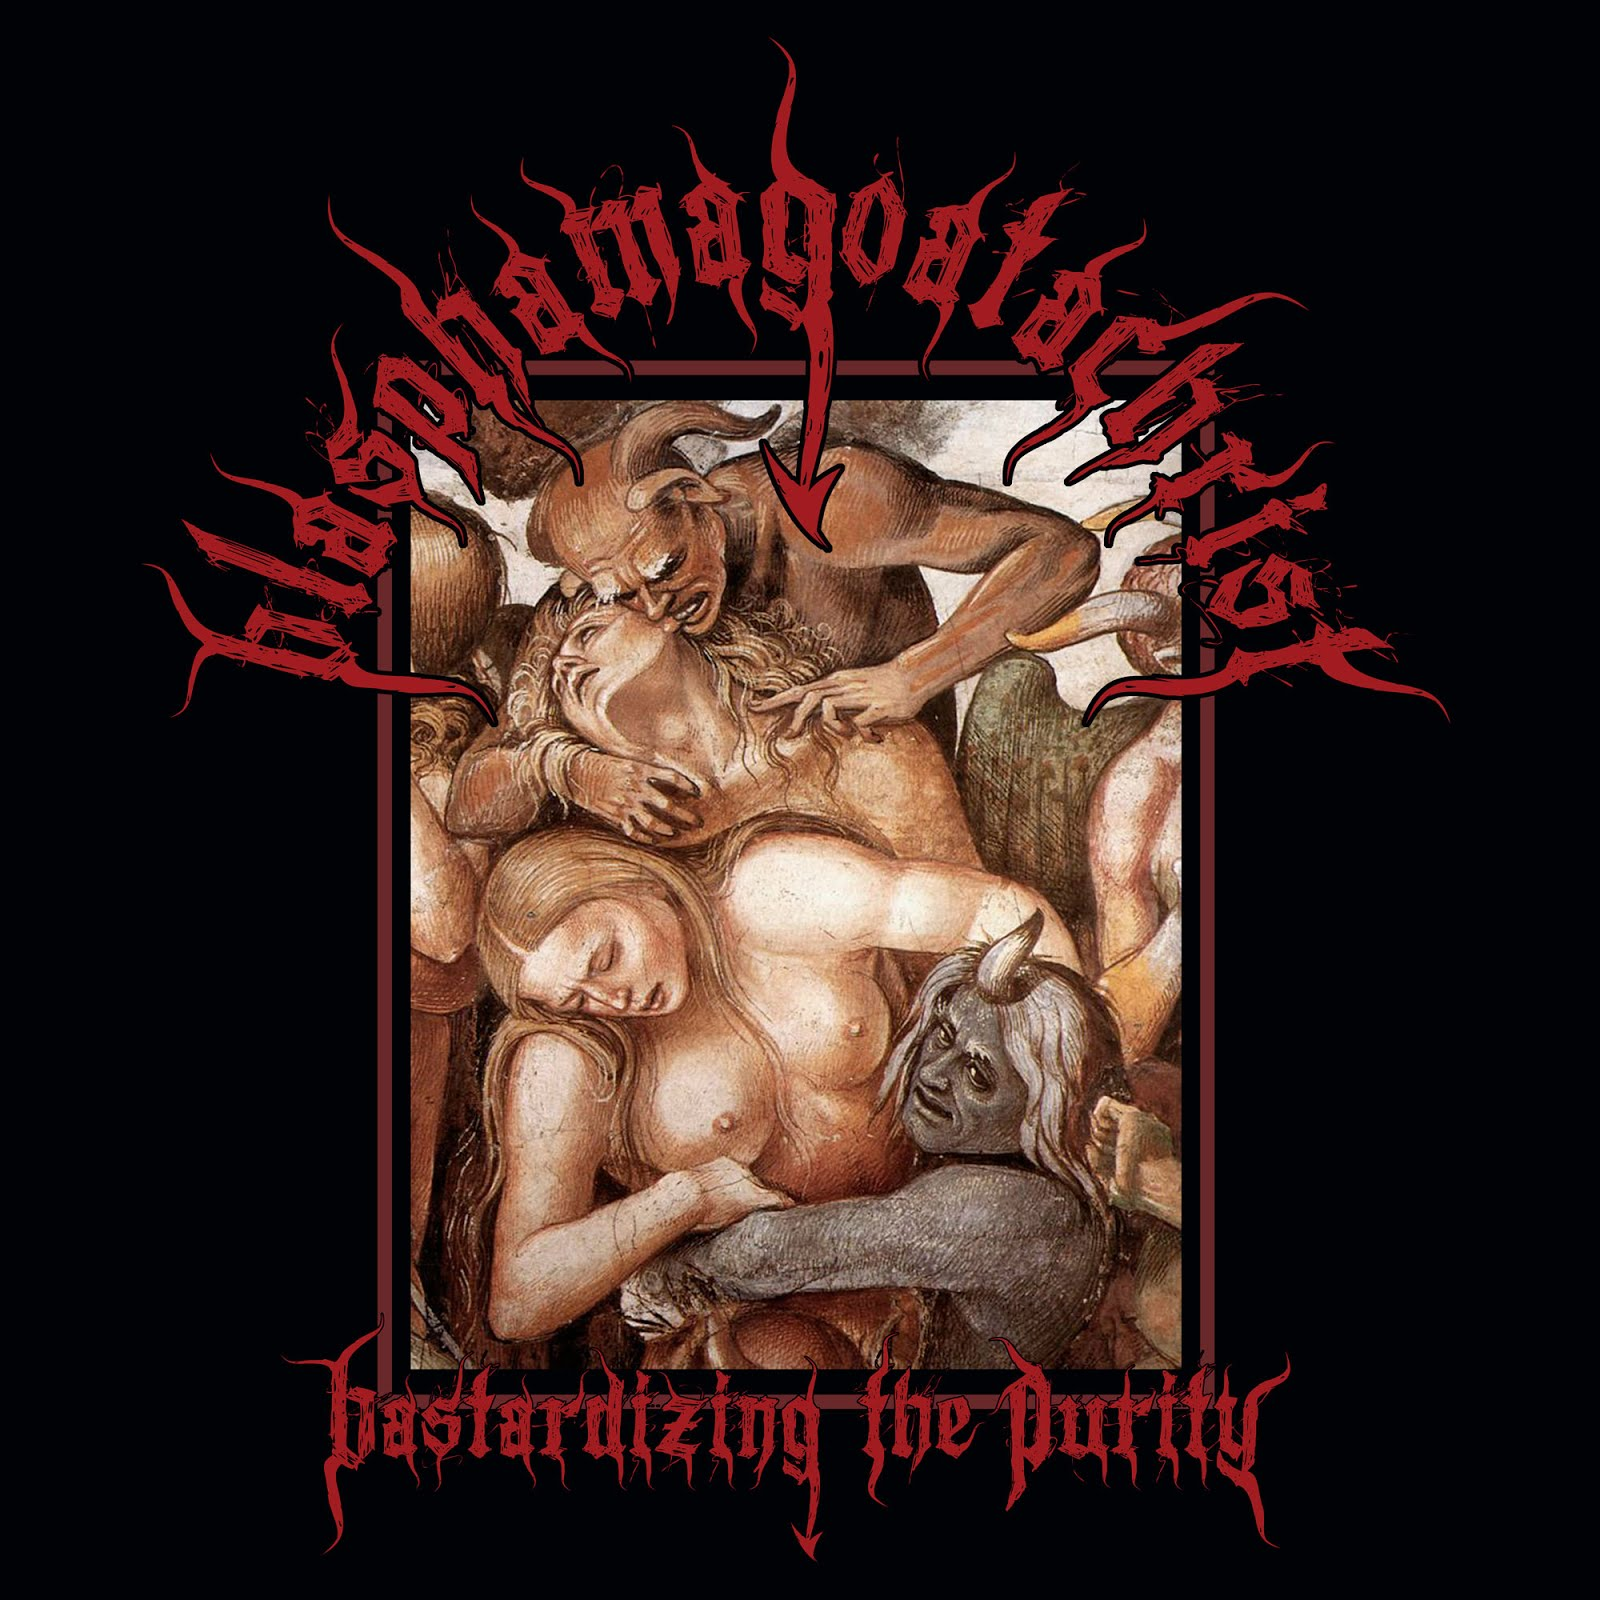 Blasphamagoatachrist - Bastardizing the Purity - Press Release + Track Stream.